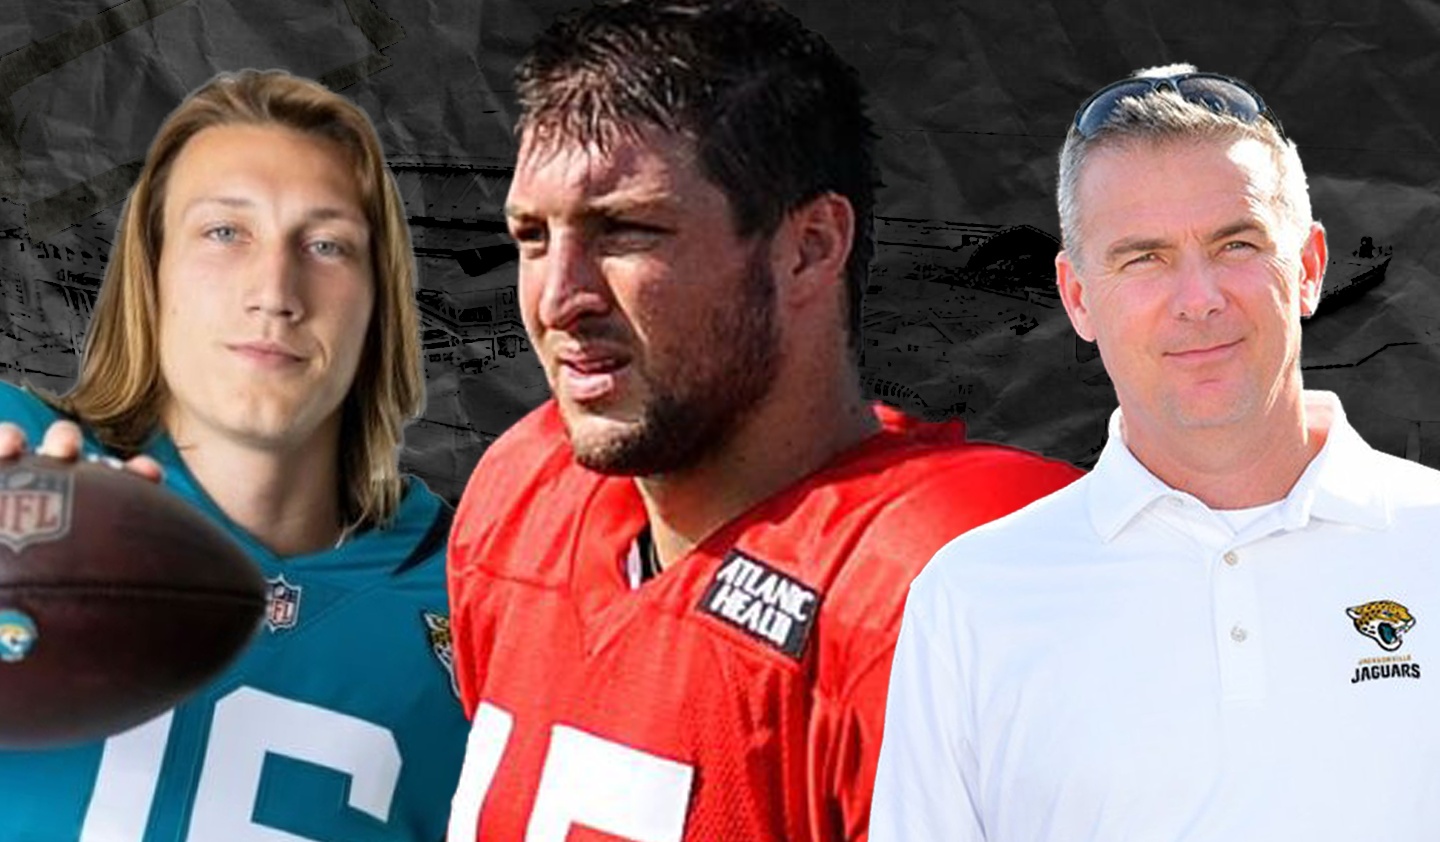 Tim Tebow To Jacksonville Jaguars: Analysis and Reaction